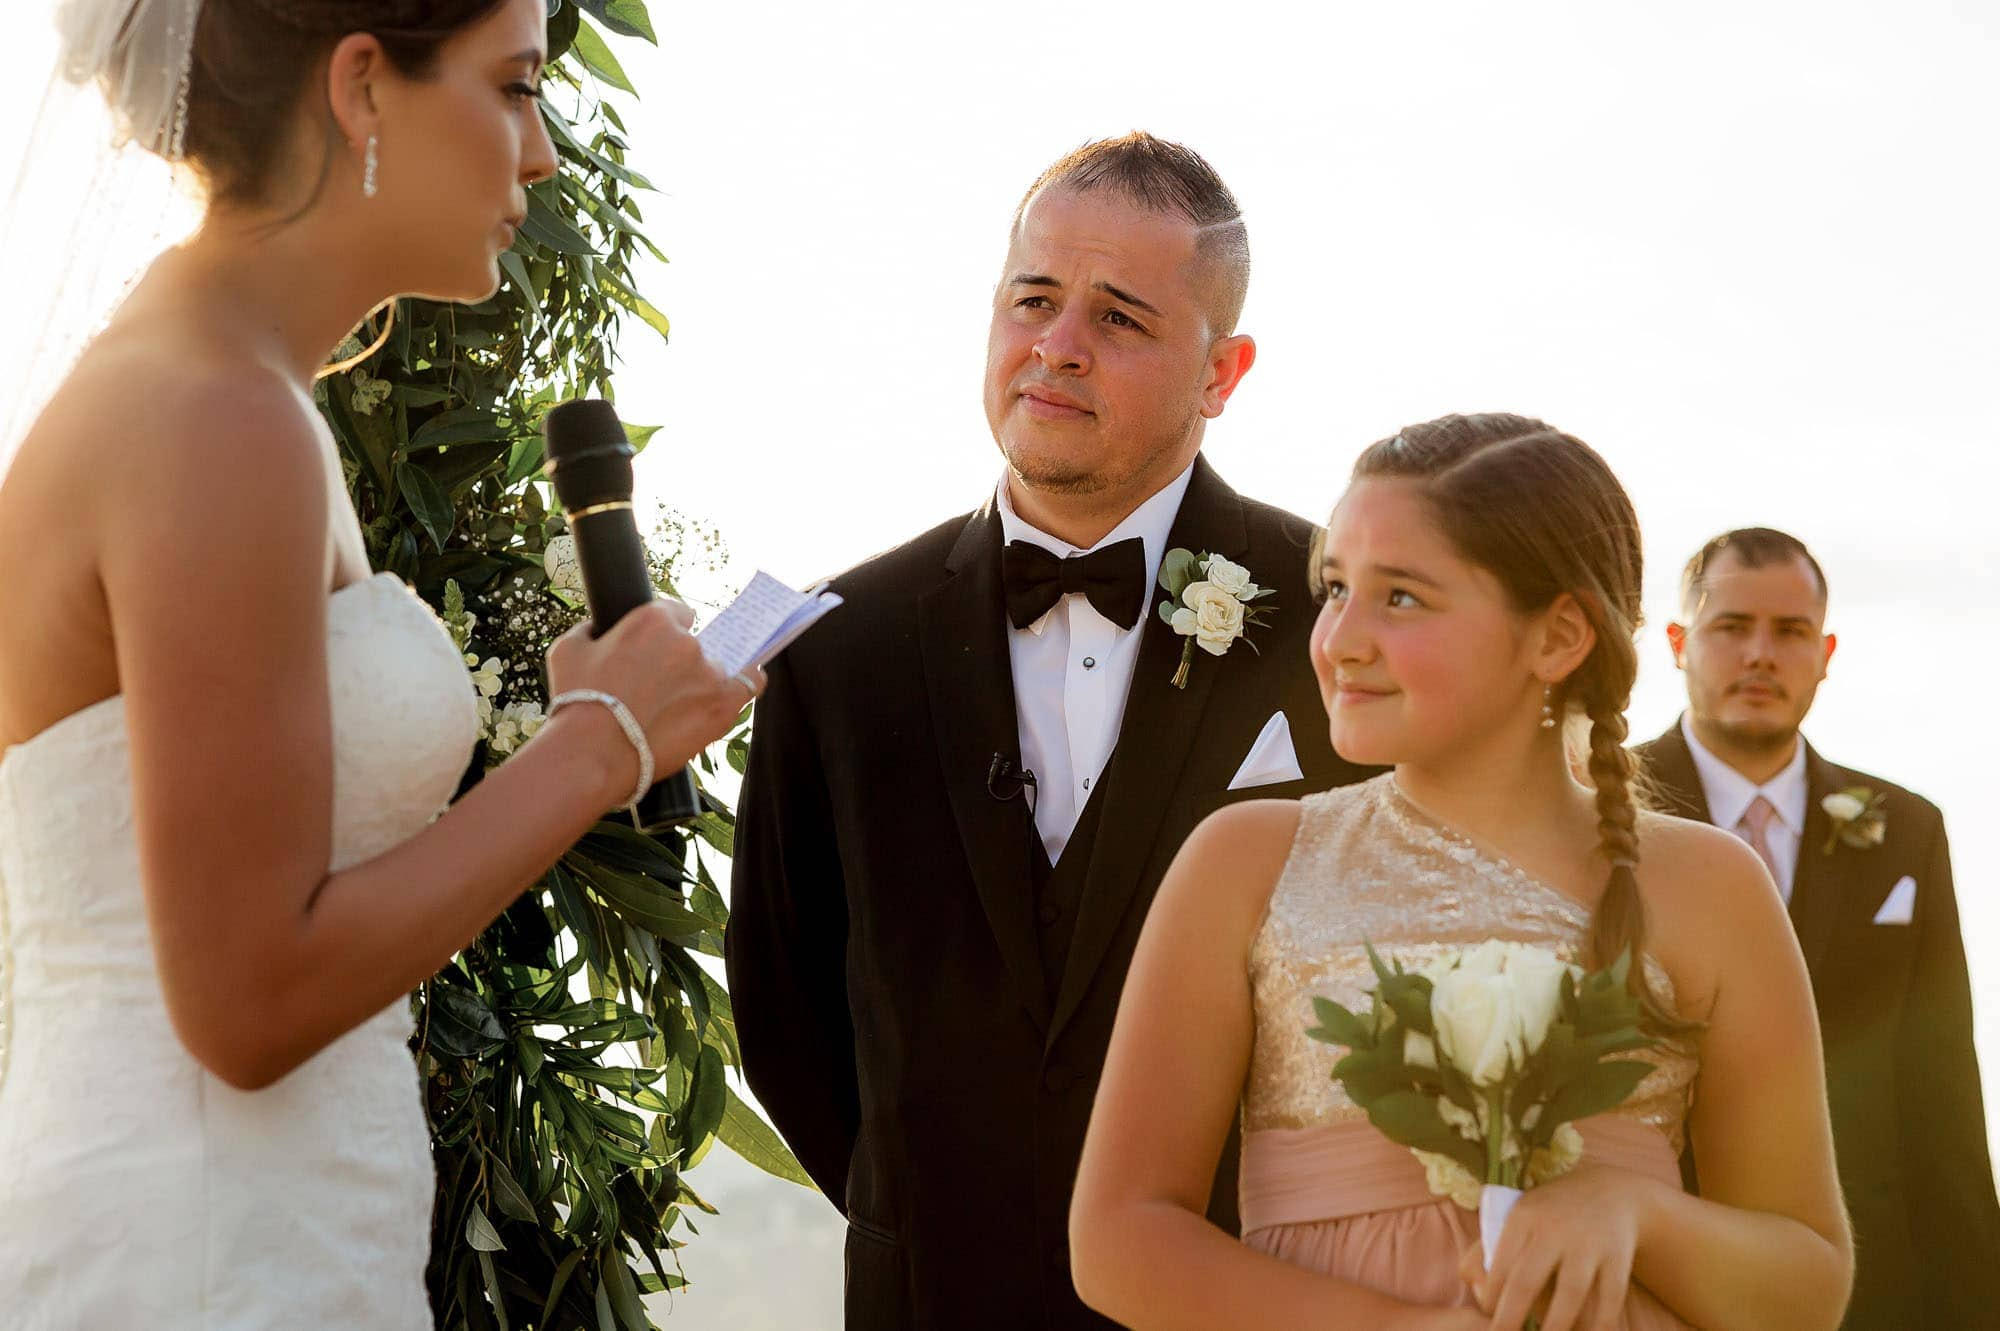 The bride speaks to her new daughter